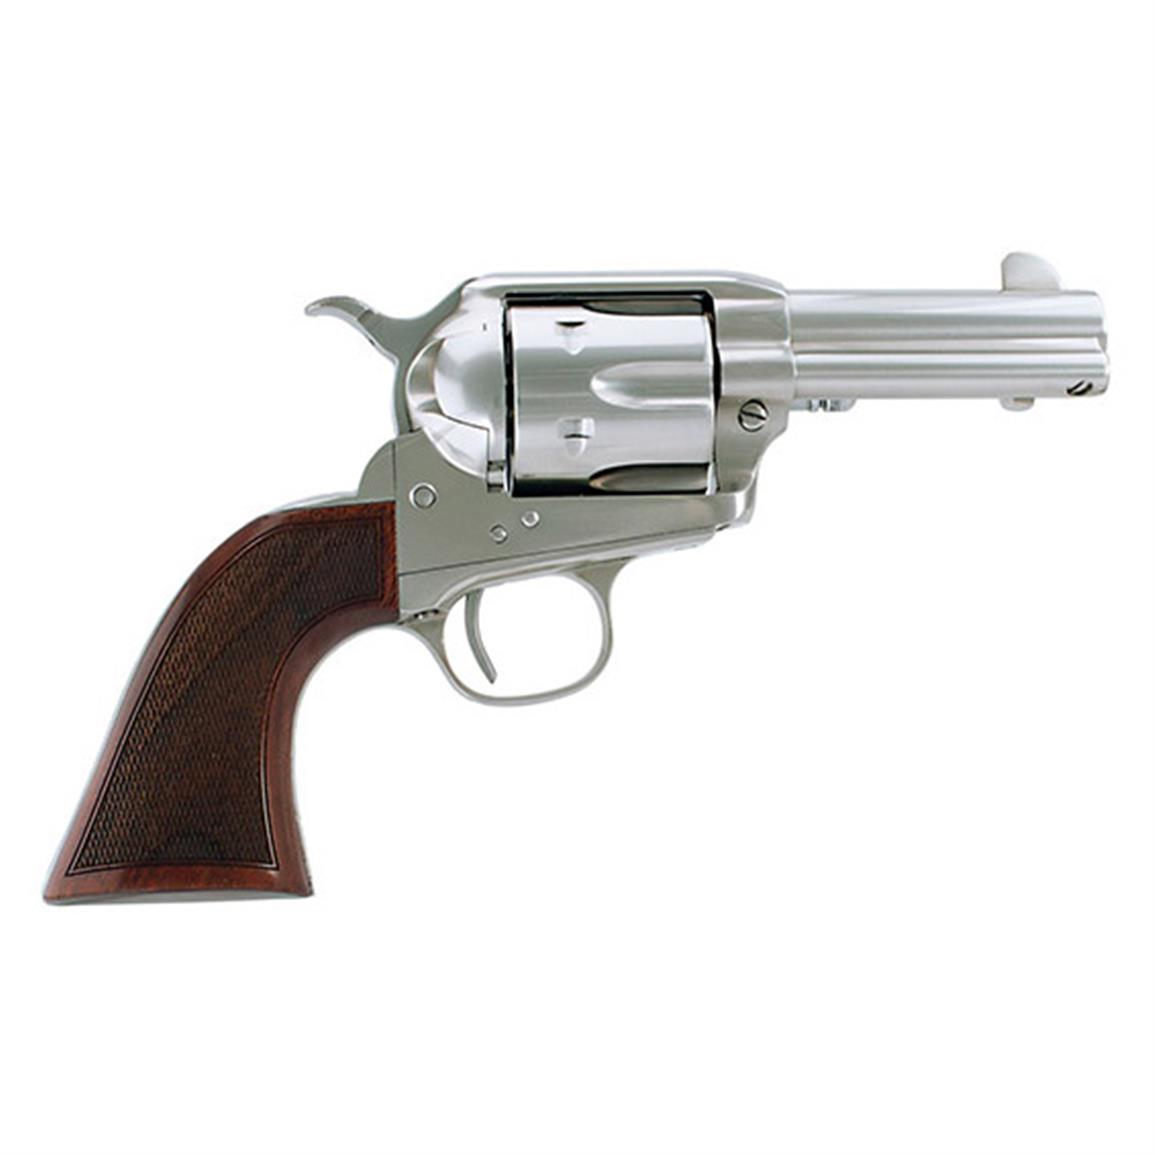 "Cimarron Firearms Co. Uberti Thunderstorm, Revolver, .45 Colt, 3.5"" Stainless Barrel, 6 Rounds"